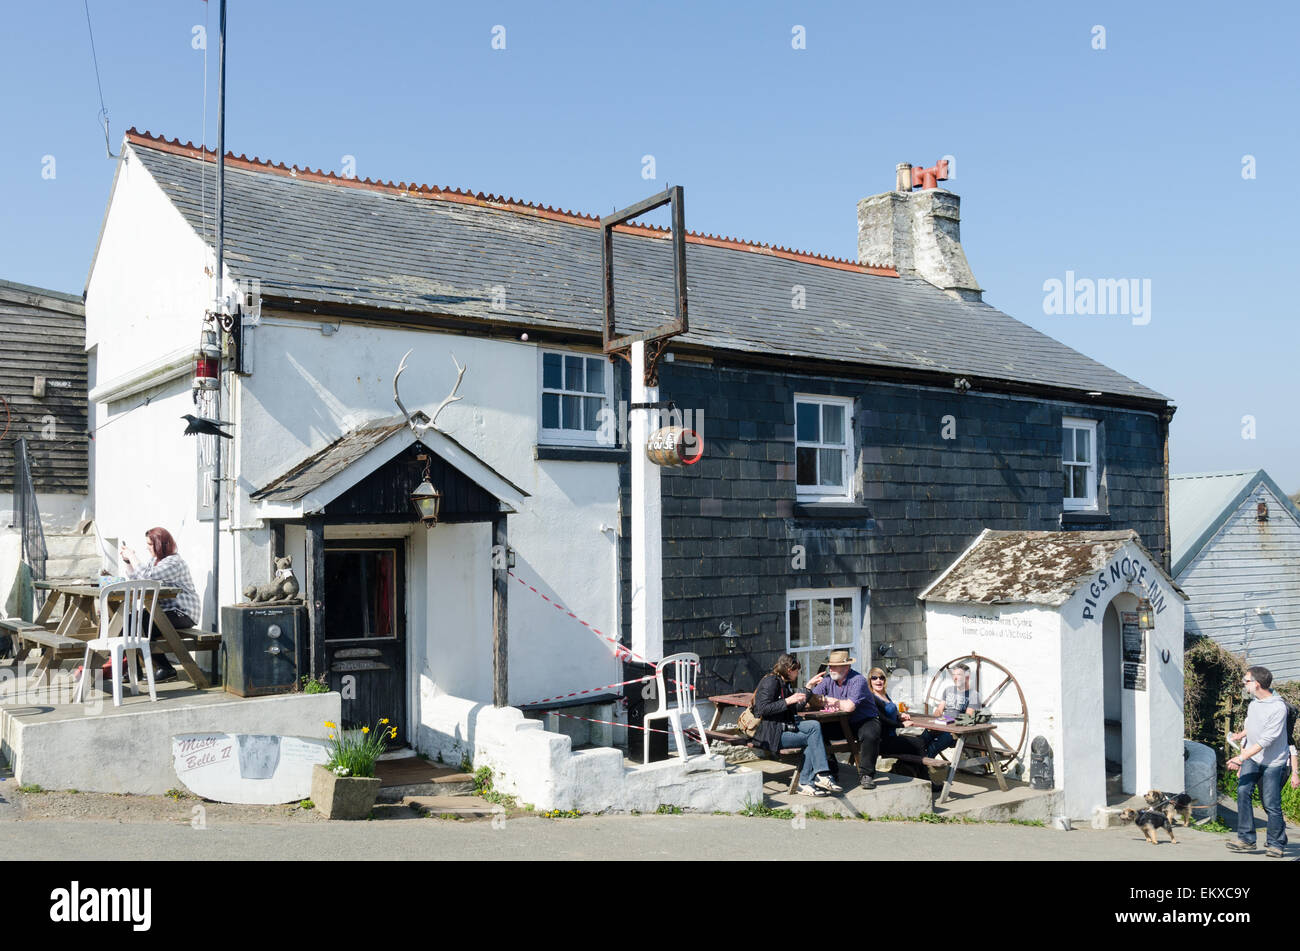 The Pigs Nose Inn public house in the South Hams village of East Prawle in Devon Stock Photo